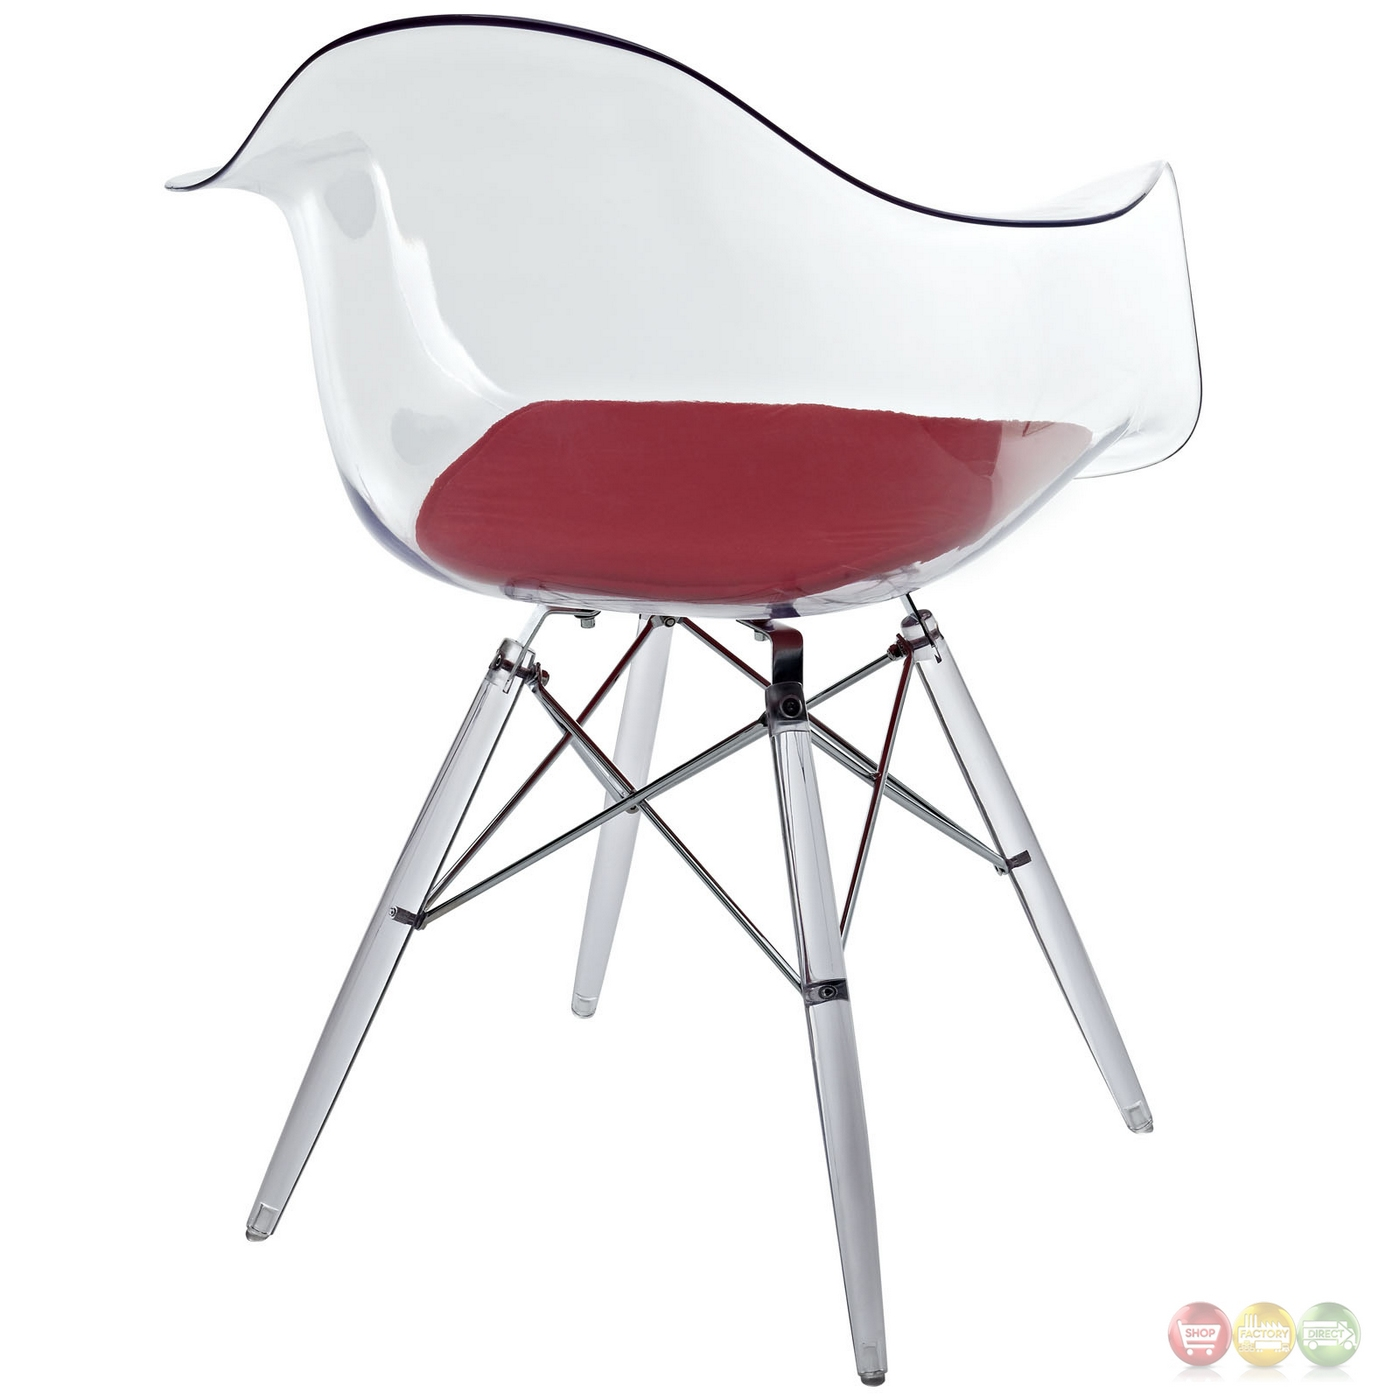 acrylic side chair with cushion broyhill dining room chairs pyramid transparent molded plastic armchair